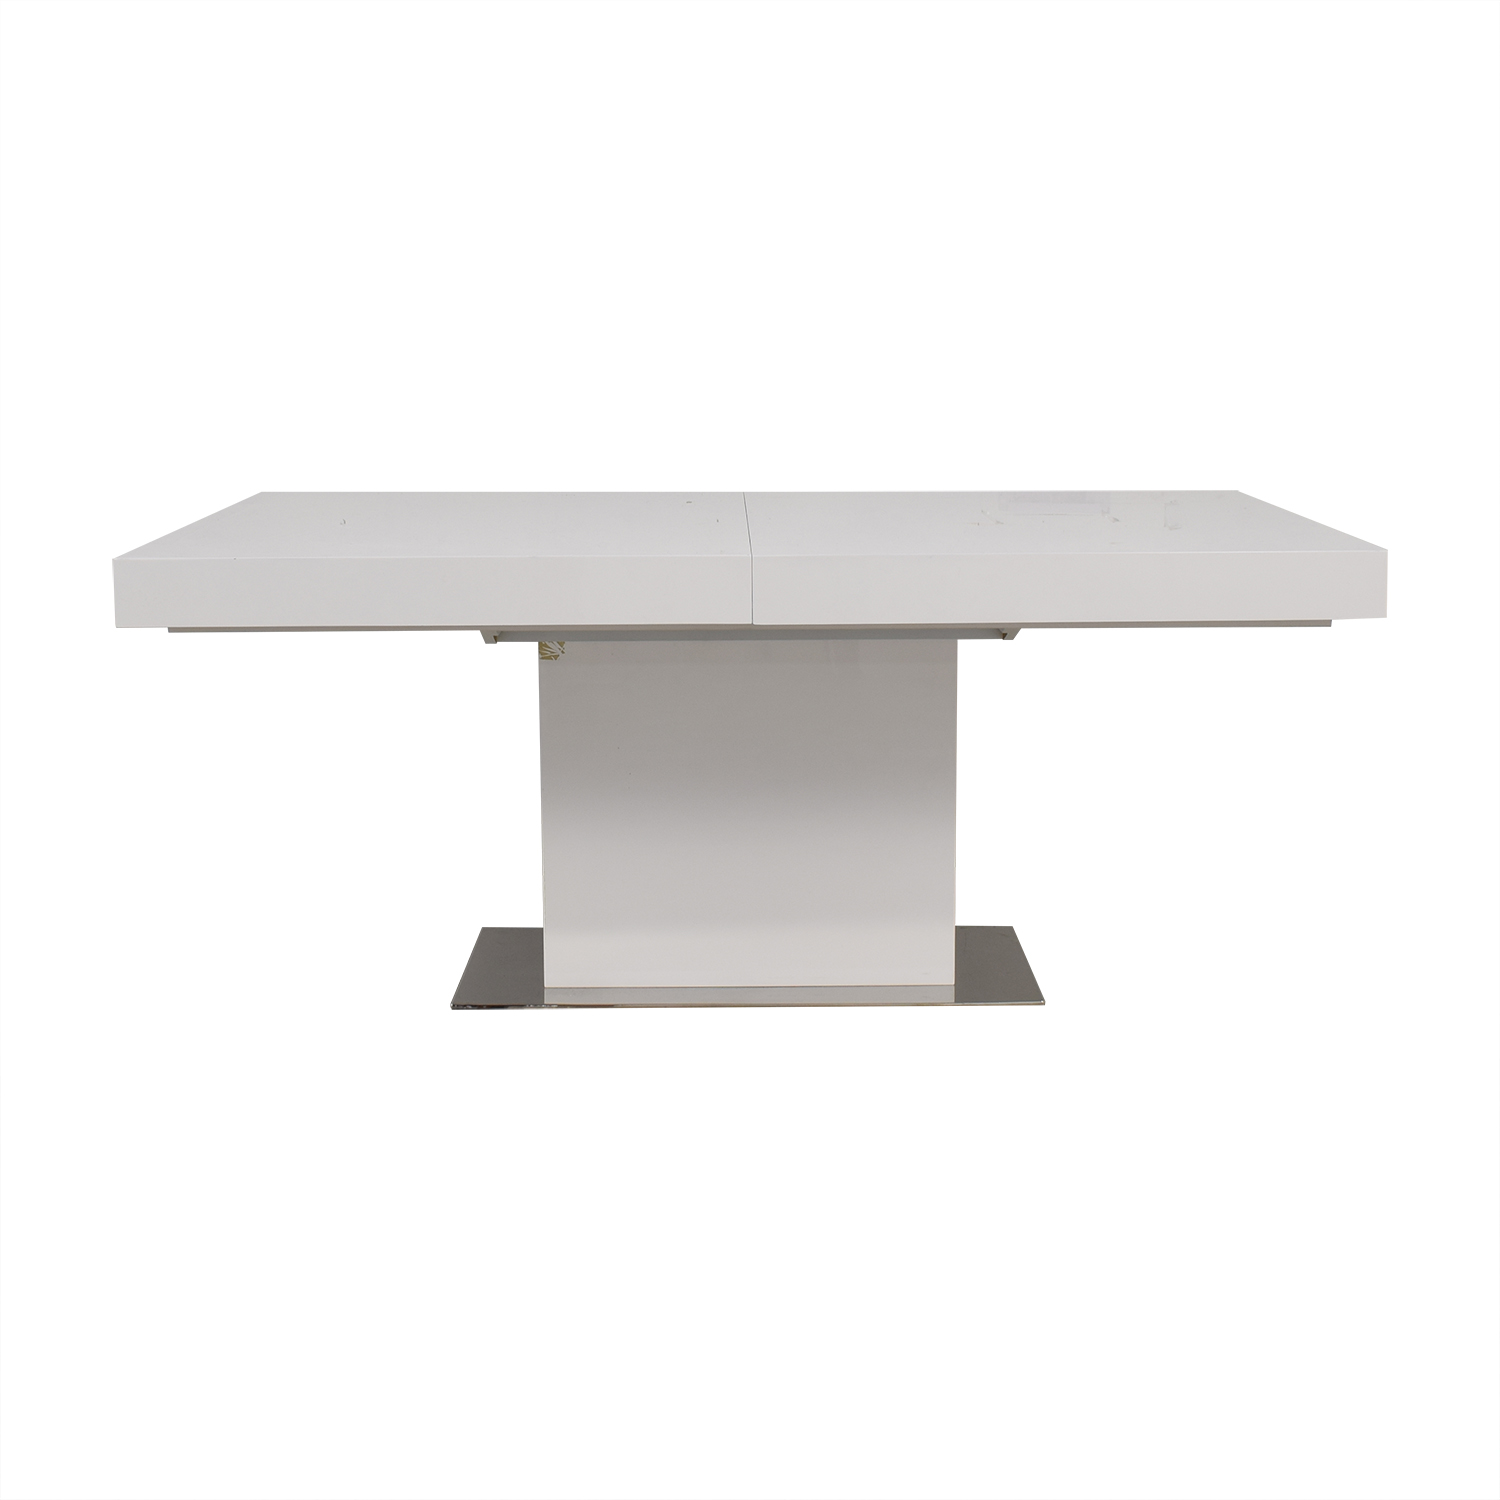 Modani Modani Palerma Extendable Table White nyc